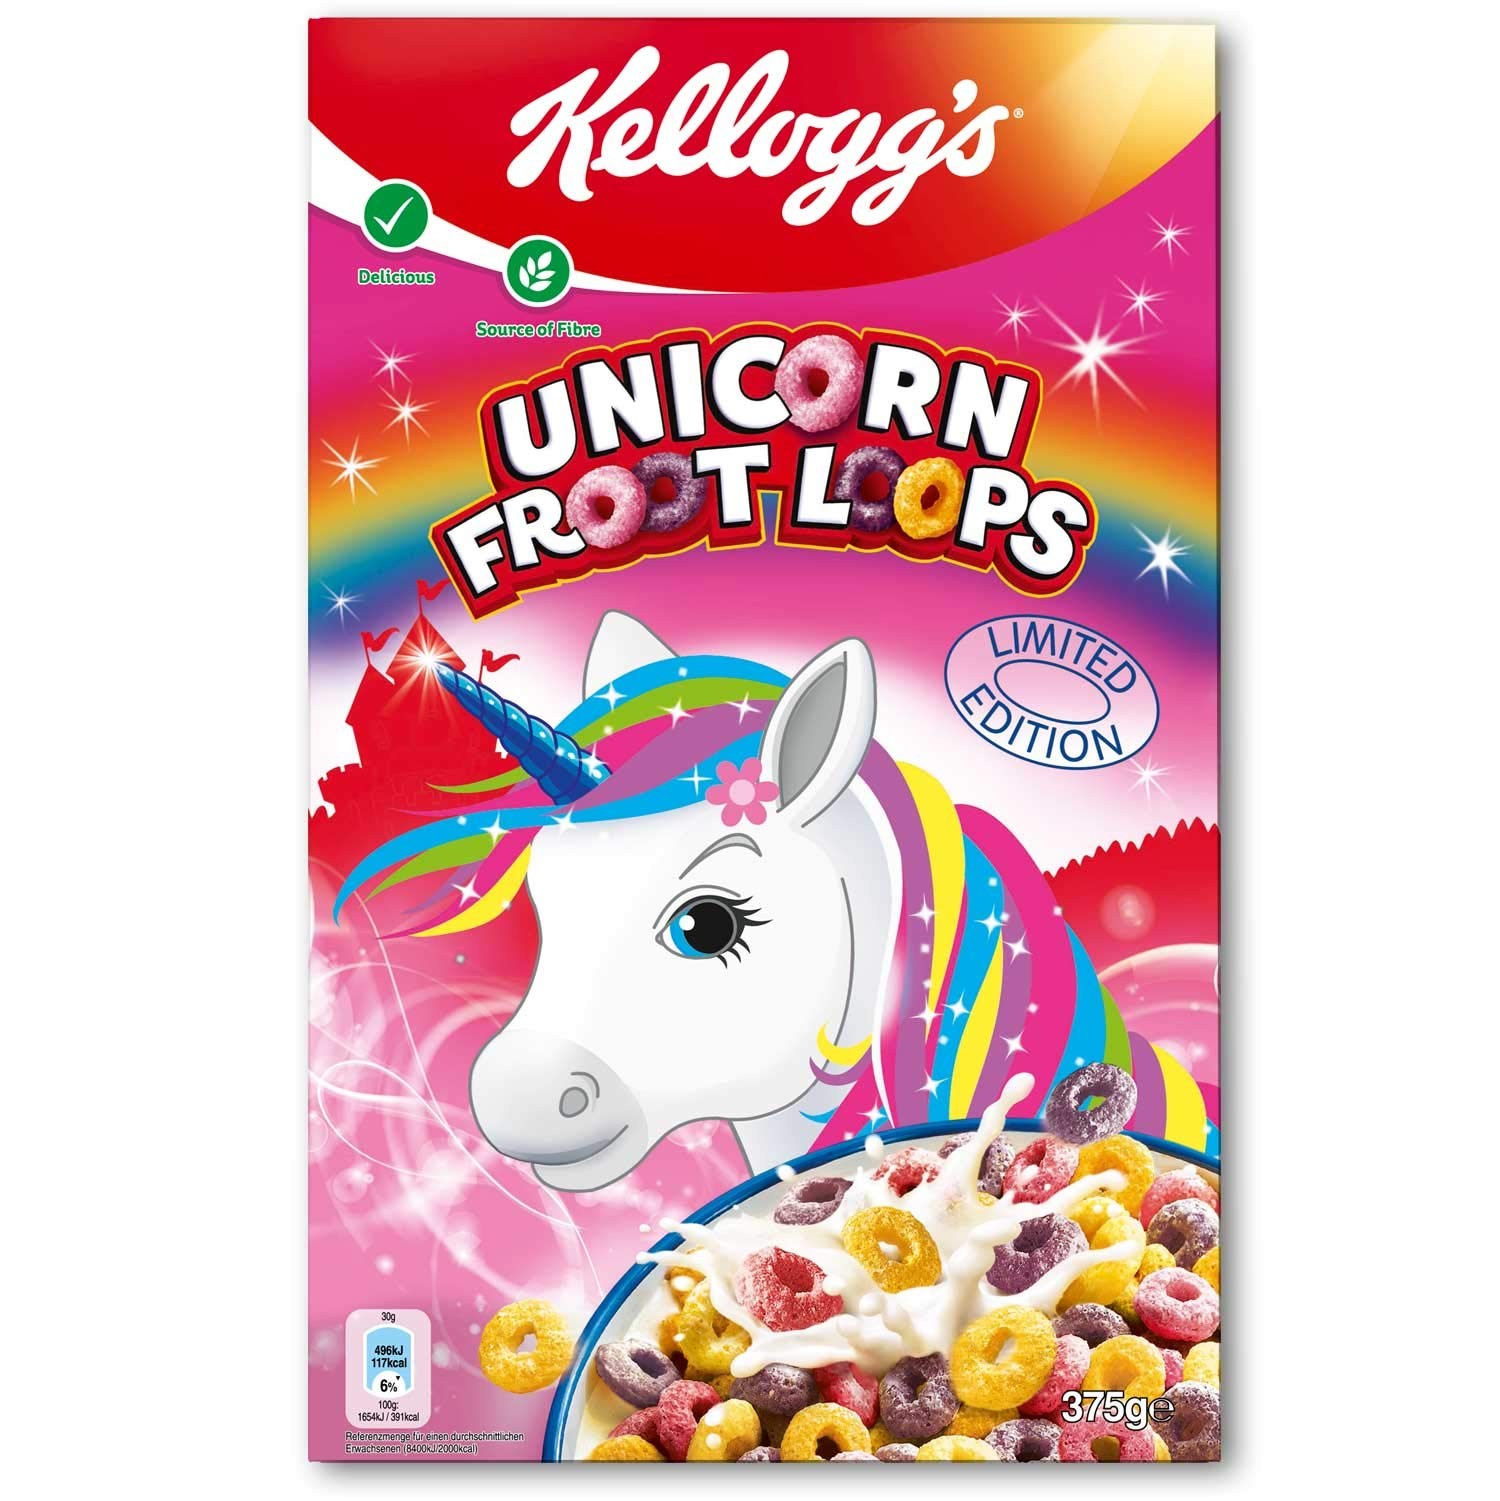 Froot Loops Unicorn Limited Edition